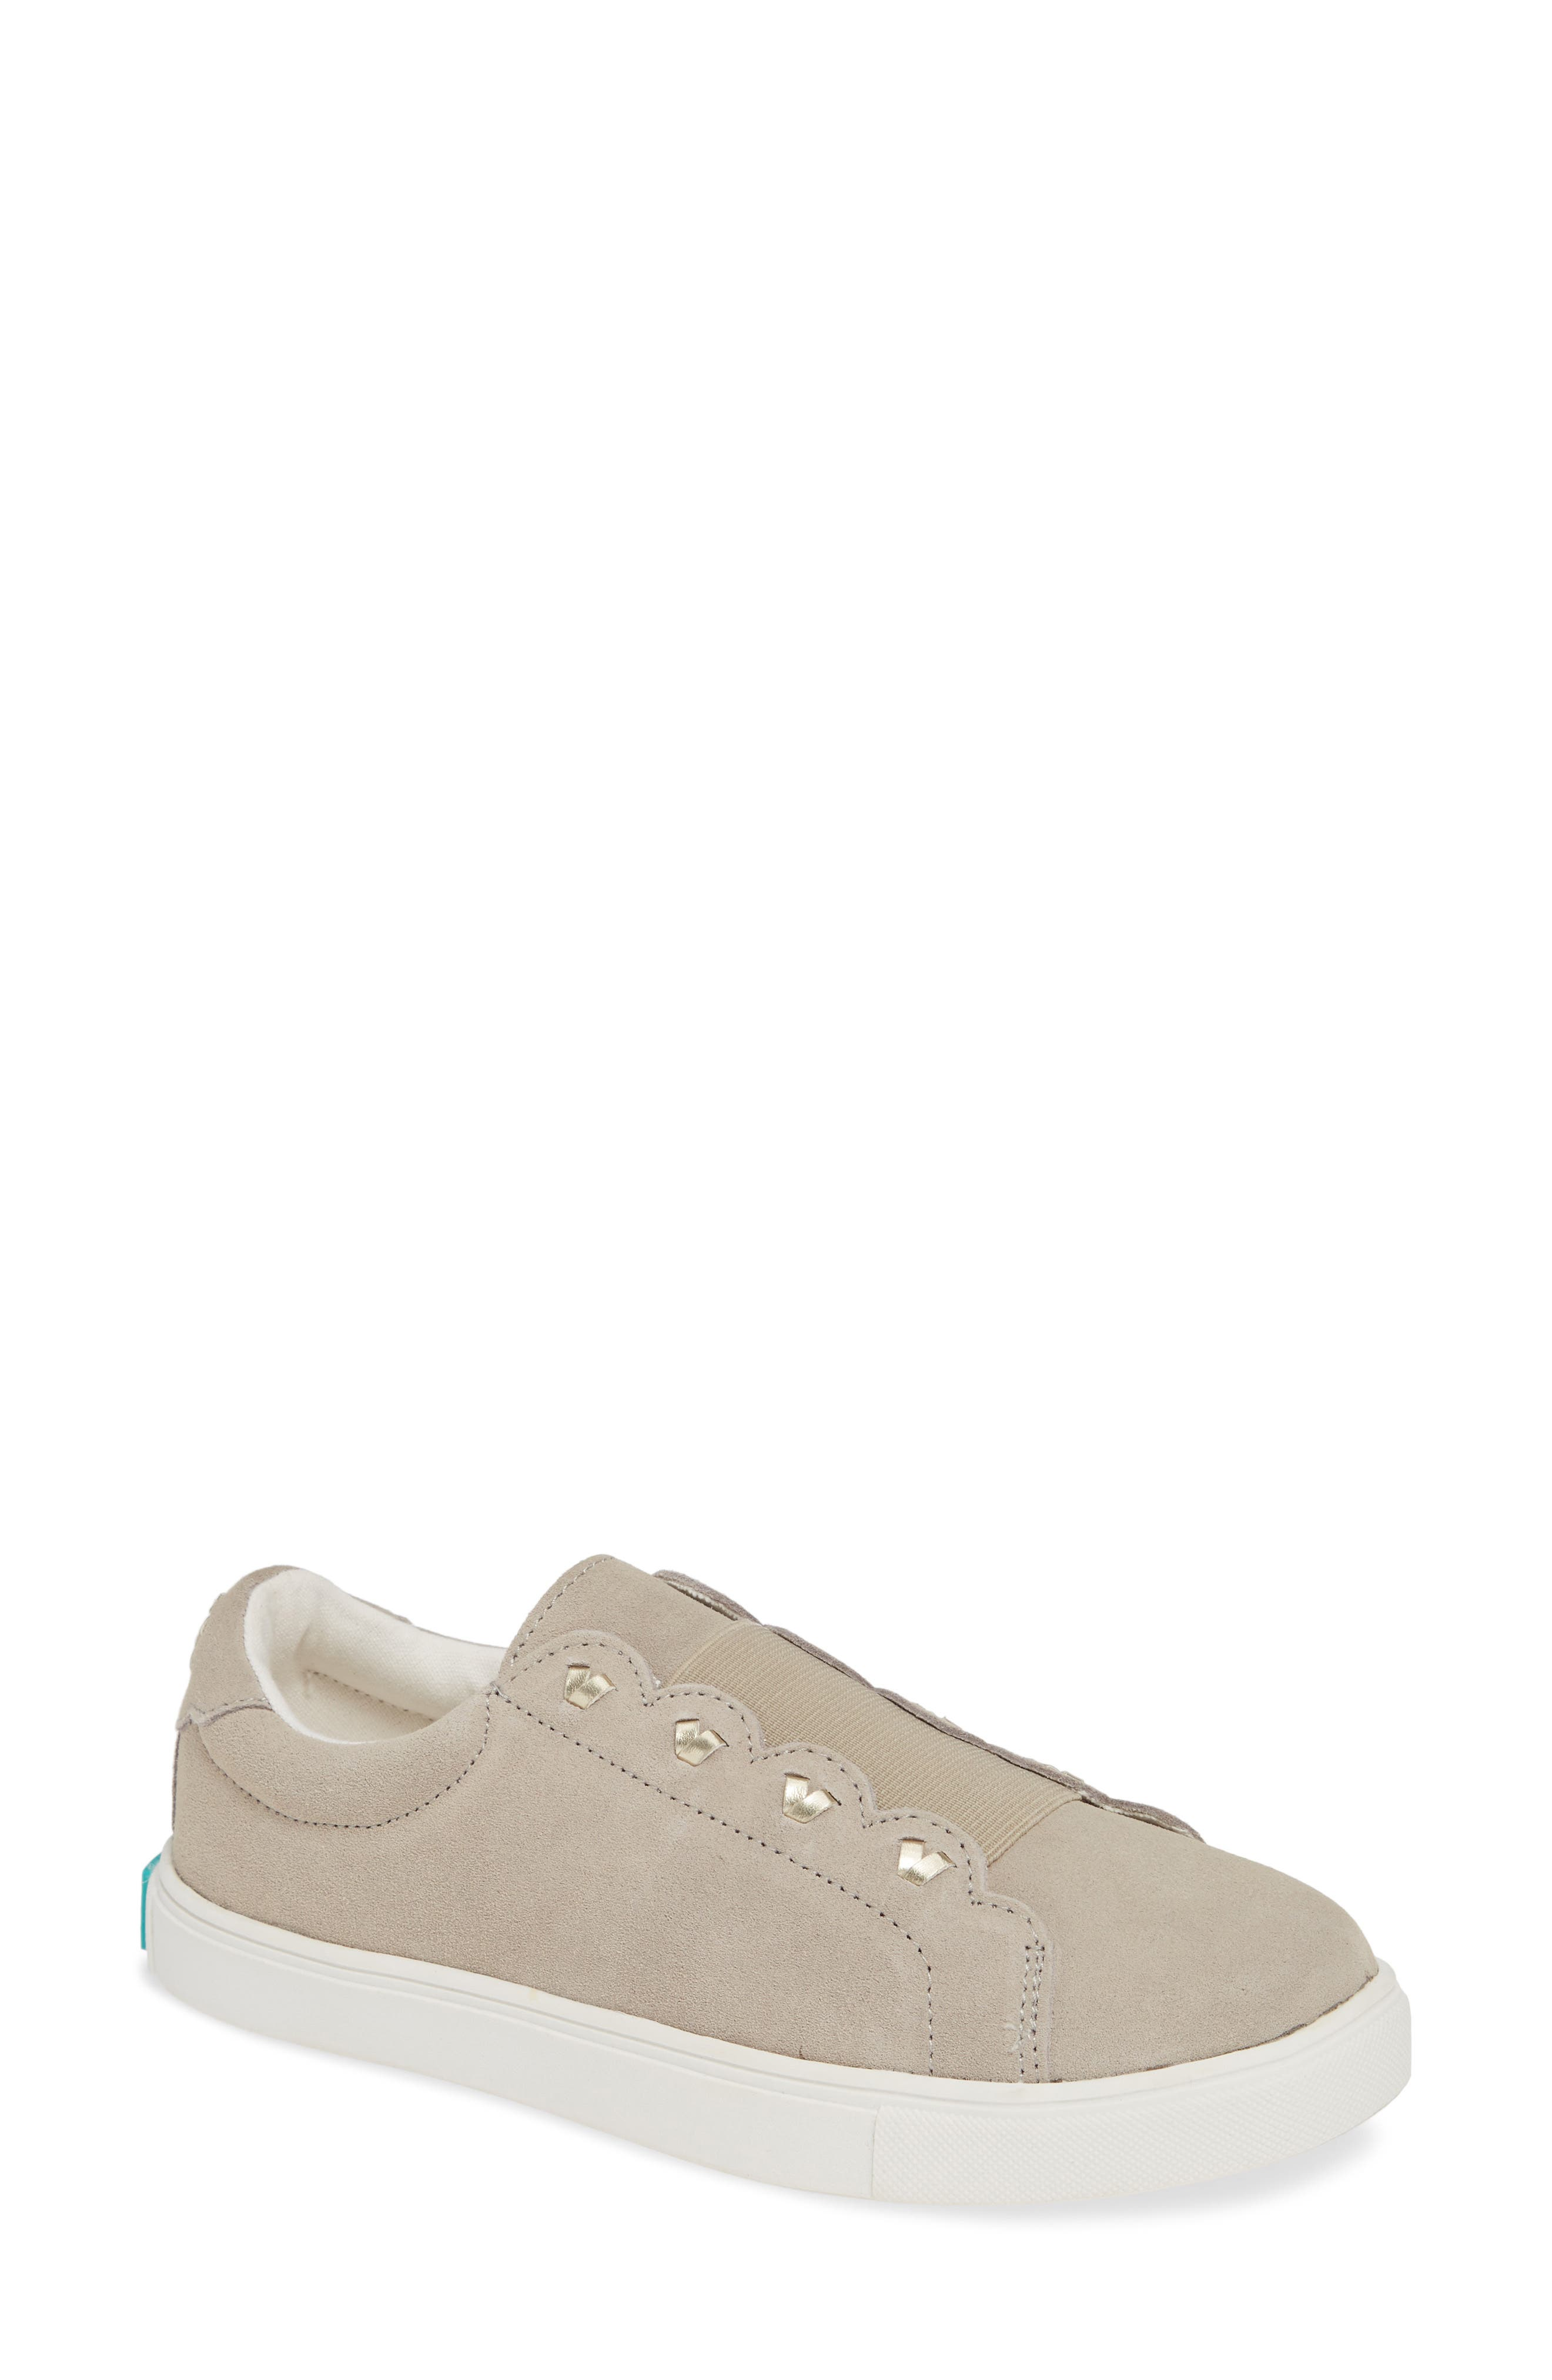 Rye Sneaker,                             Main thumbnail 1, color,                             DOVE GREY SUEDE